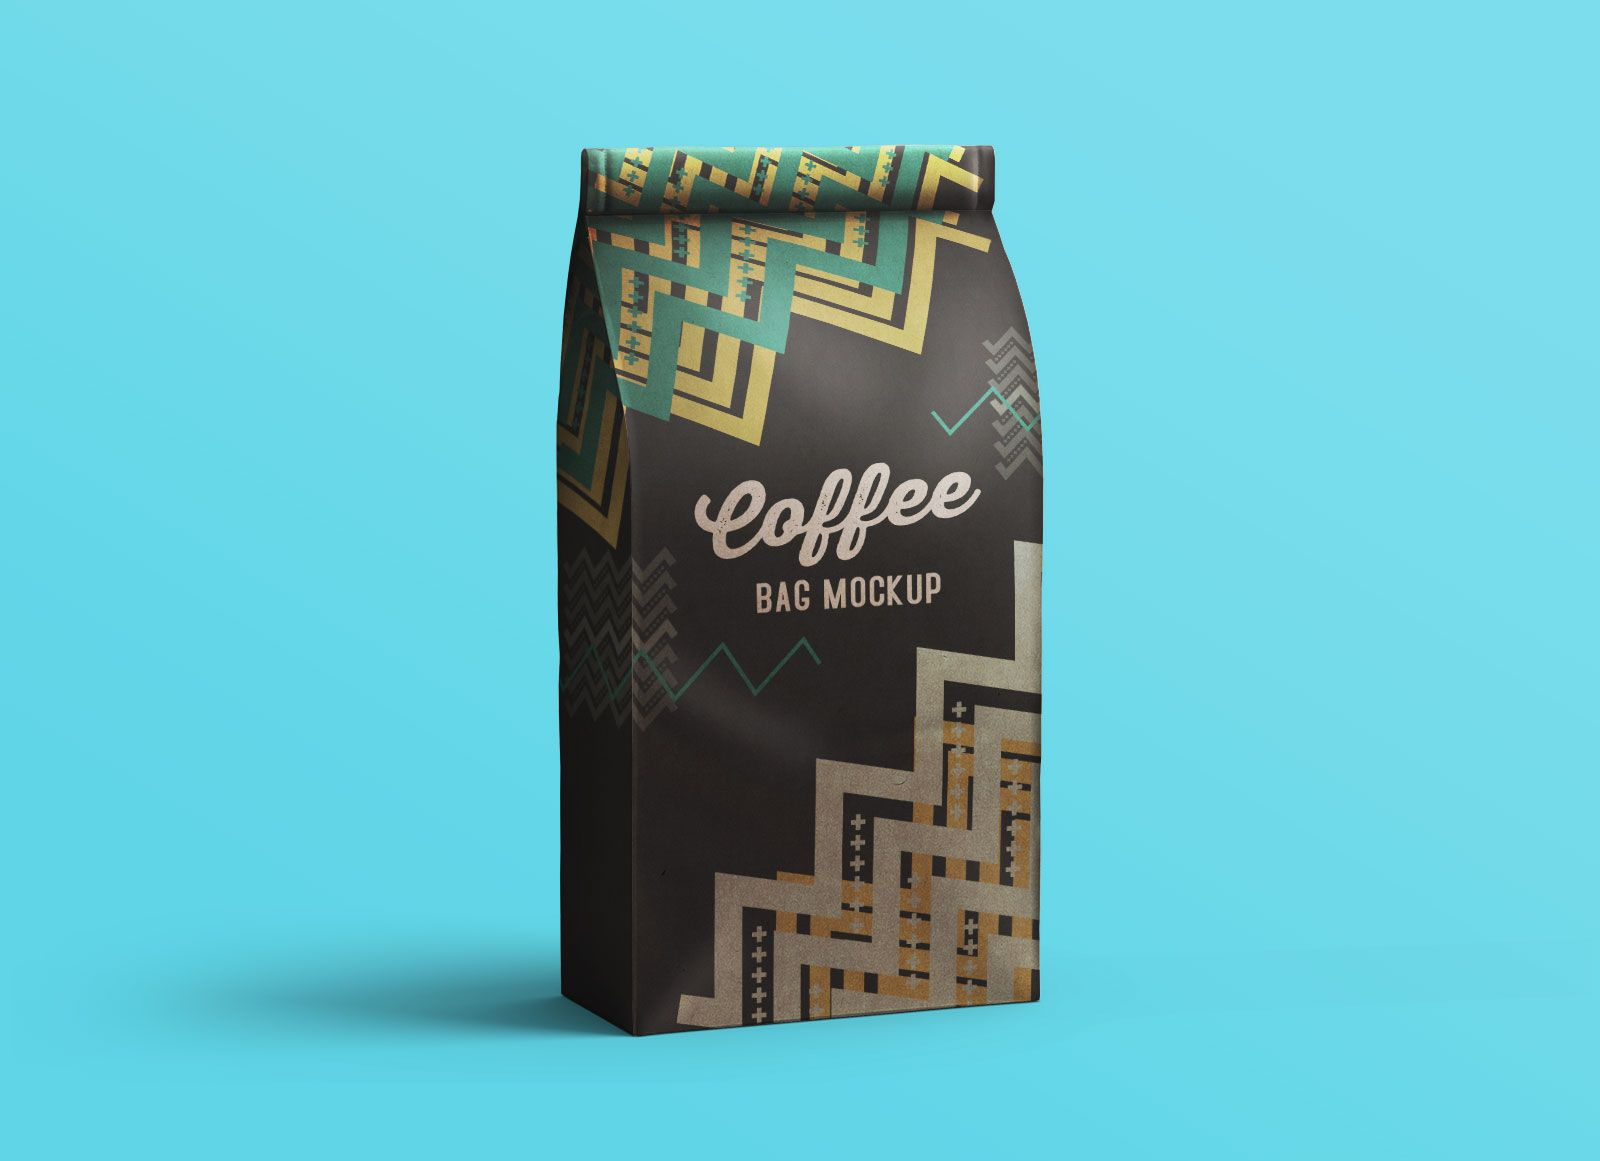 Download Free Coffee Bag Packaging Mockup Psd Set Packaging Mockup Free Coffee Bag Packaging